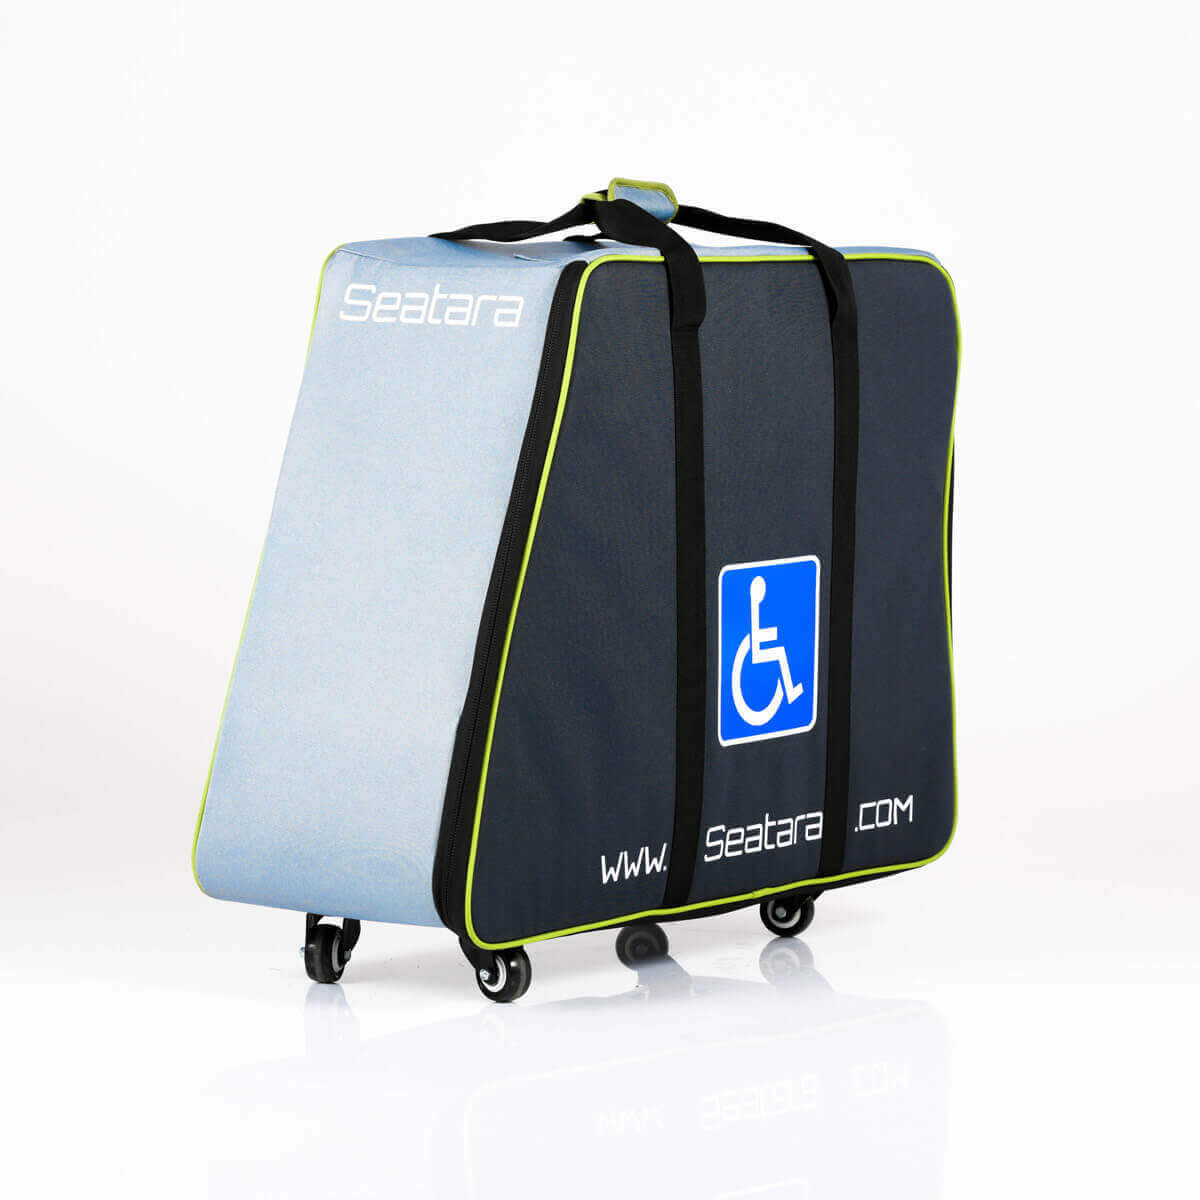 WheelAble comfortable carrying case for travel